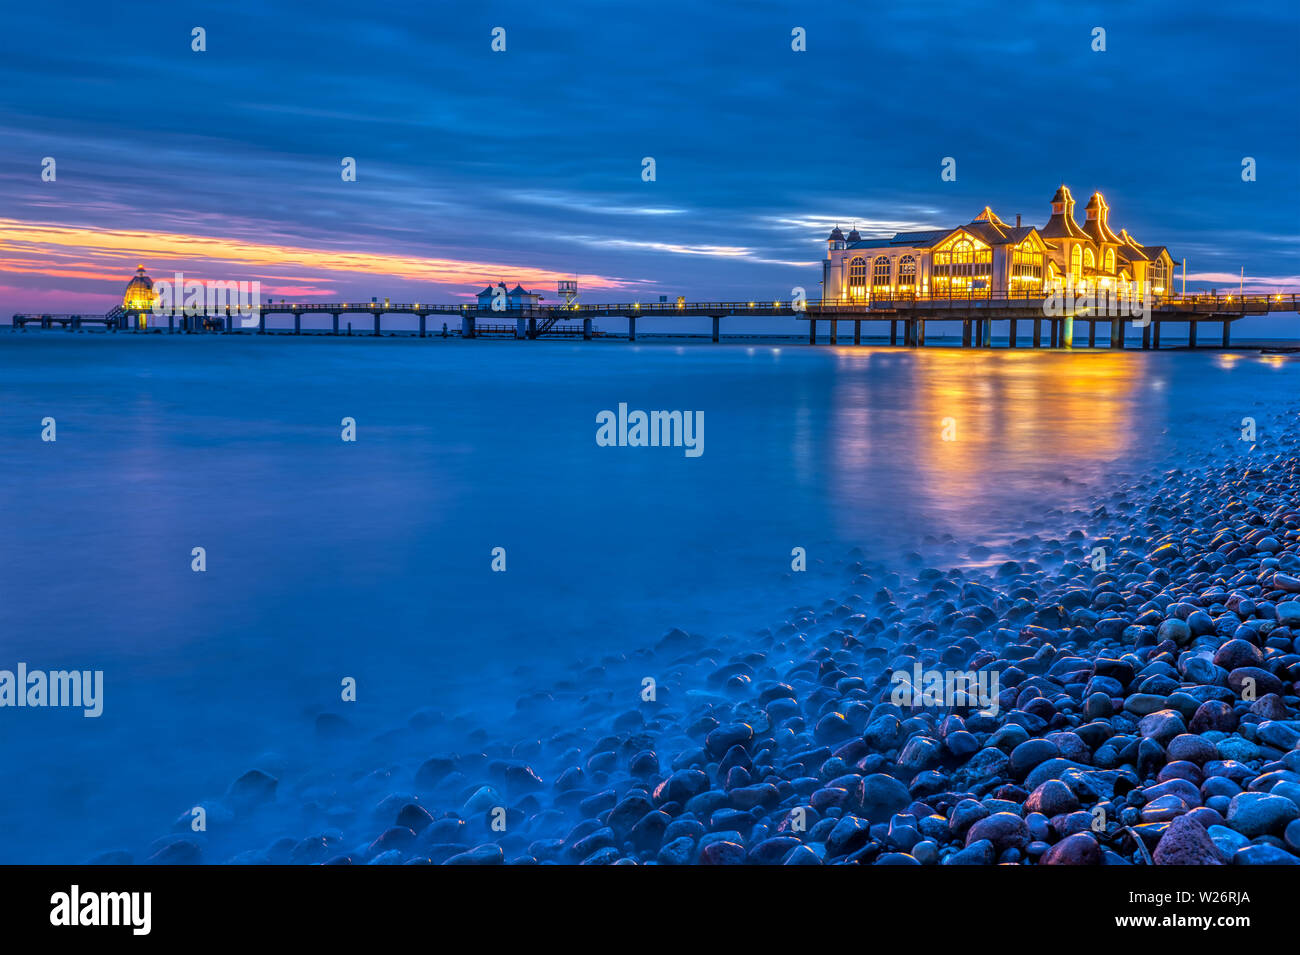 The sea pier of Sellin at night with pebbles in the foreground Stock Photo